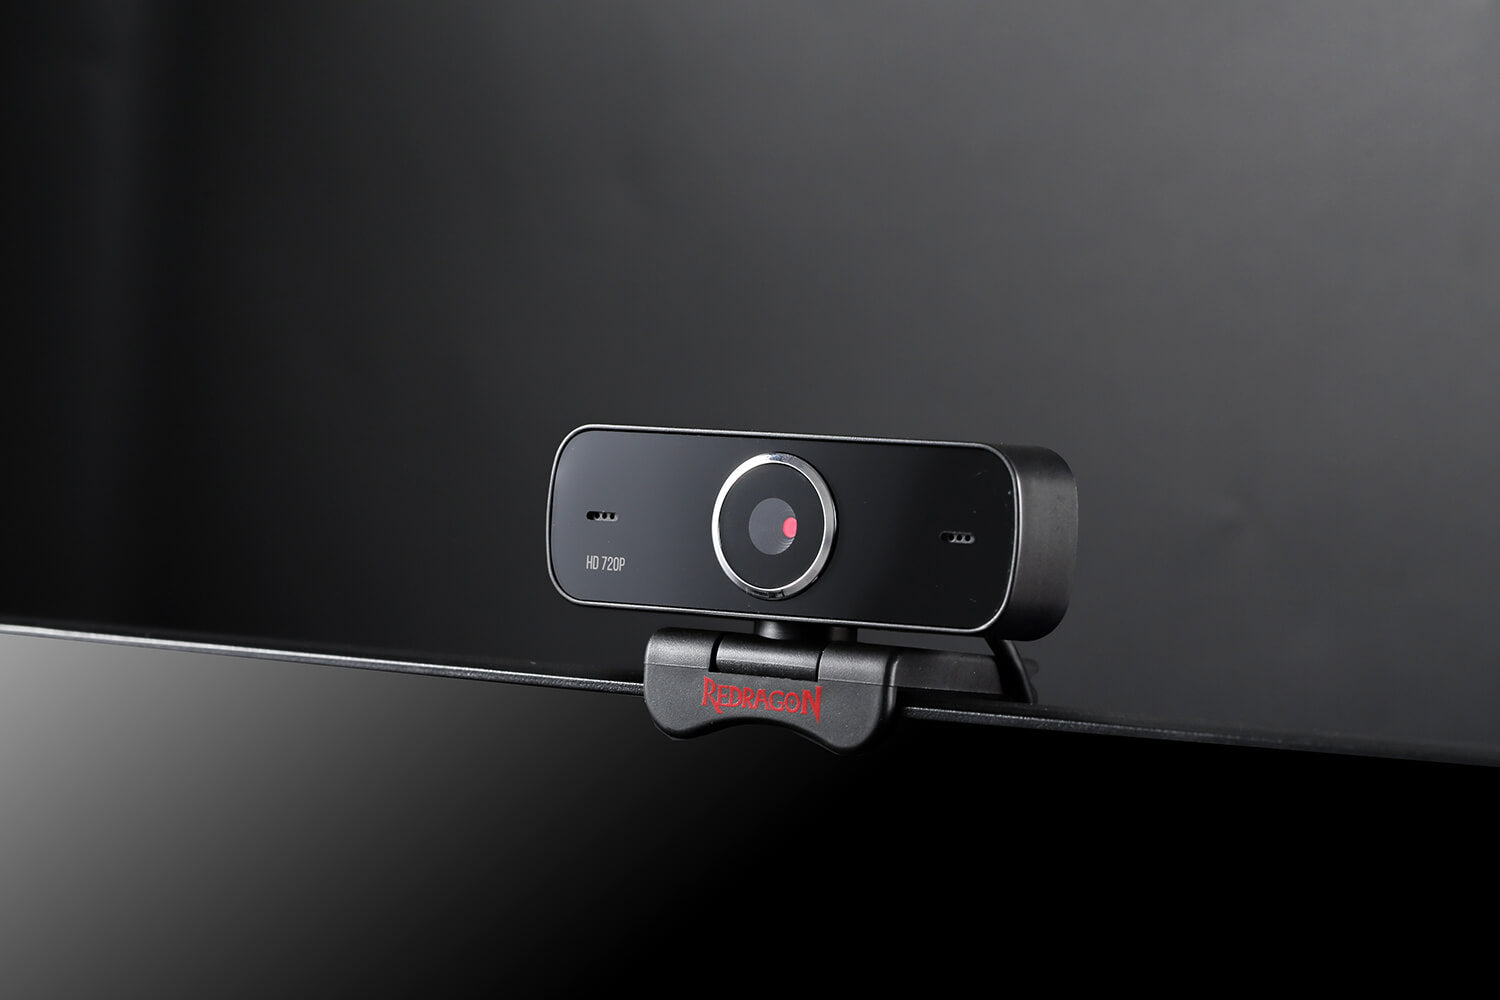 redragon 720P webcam